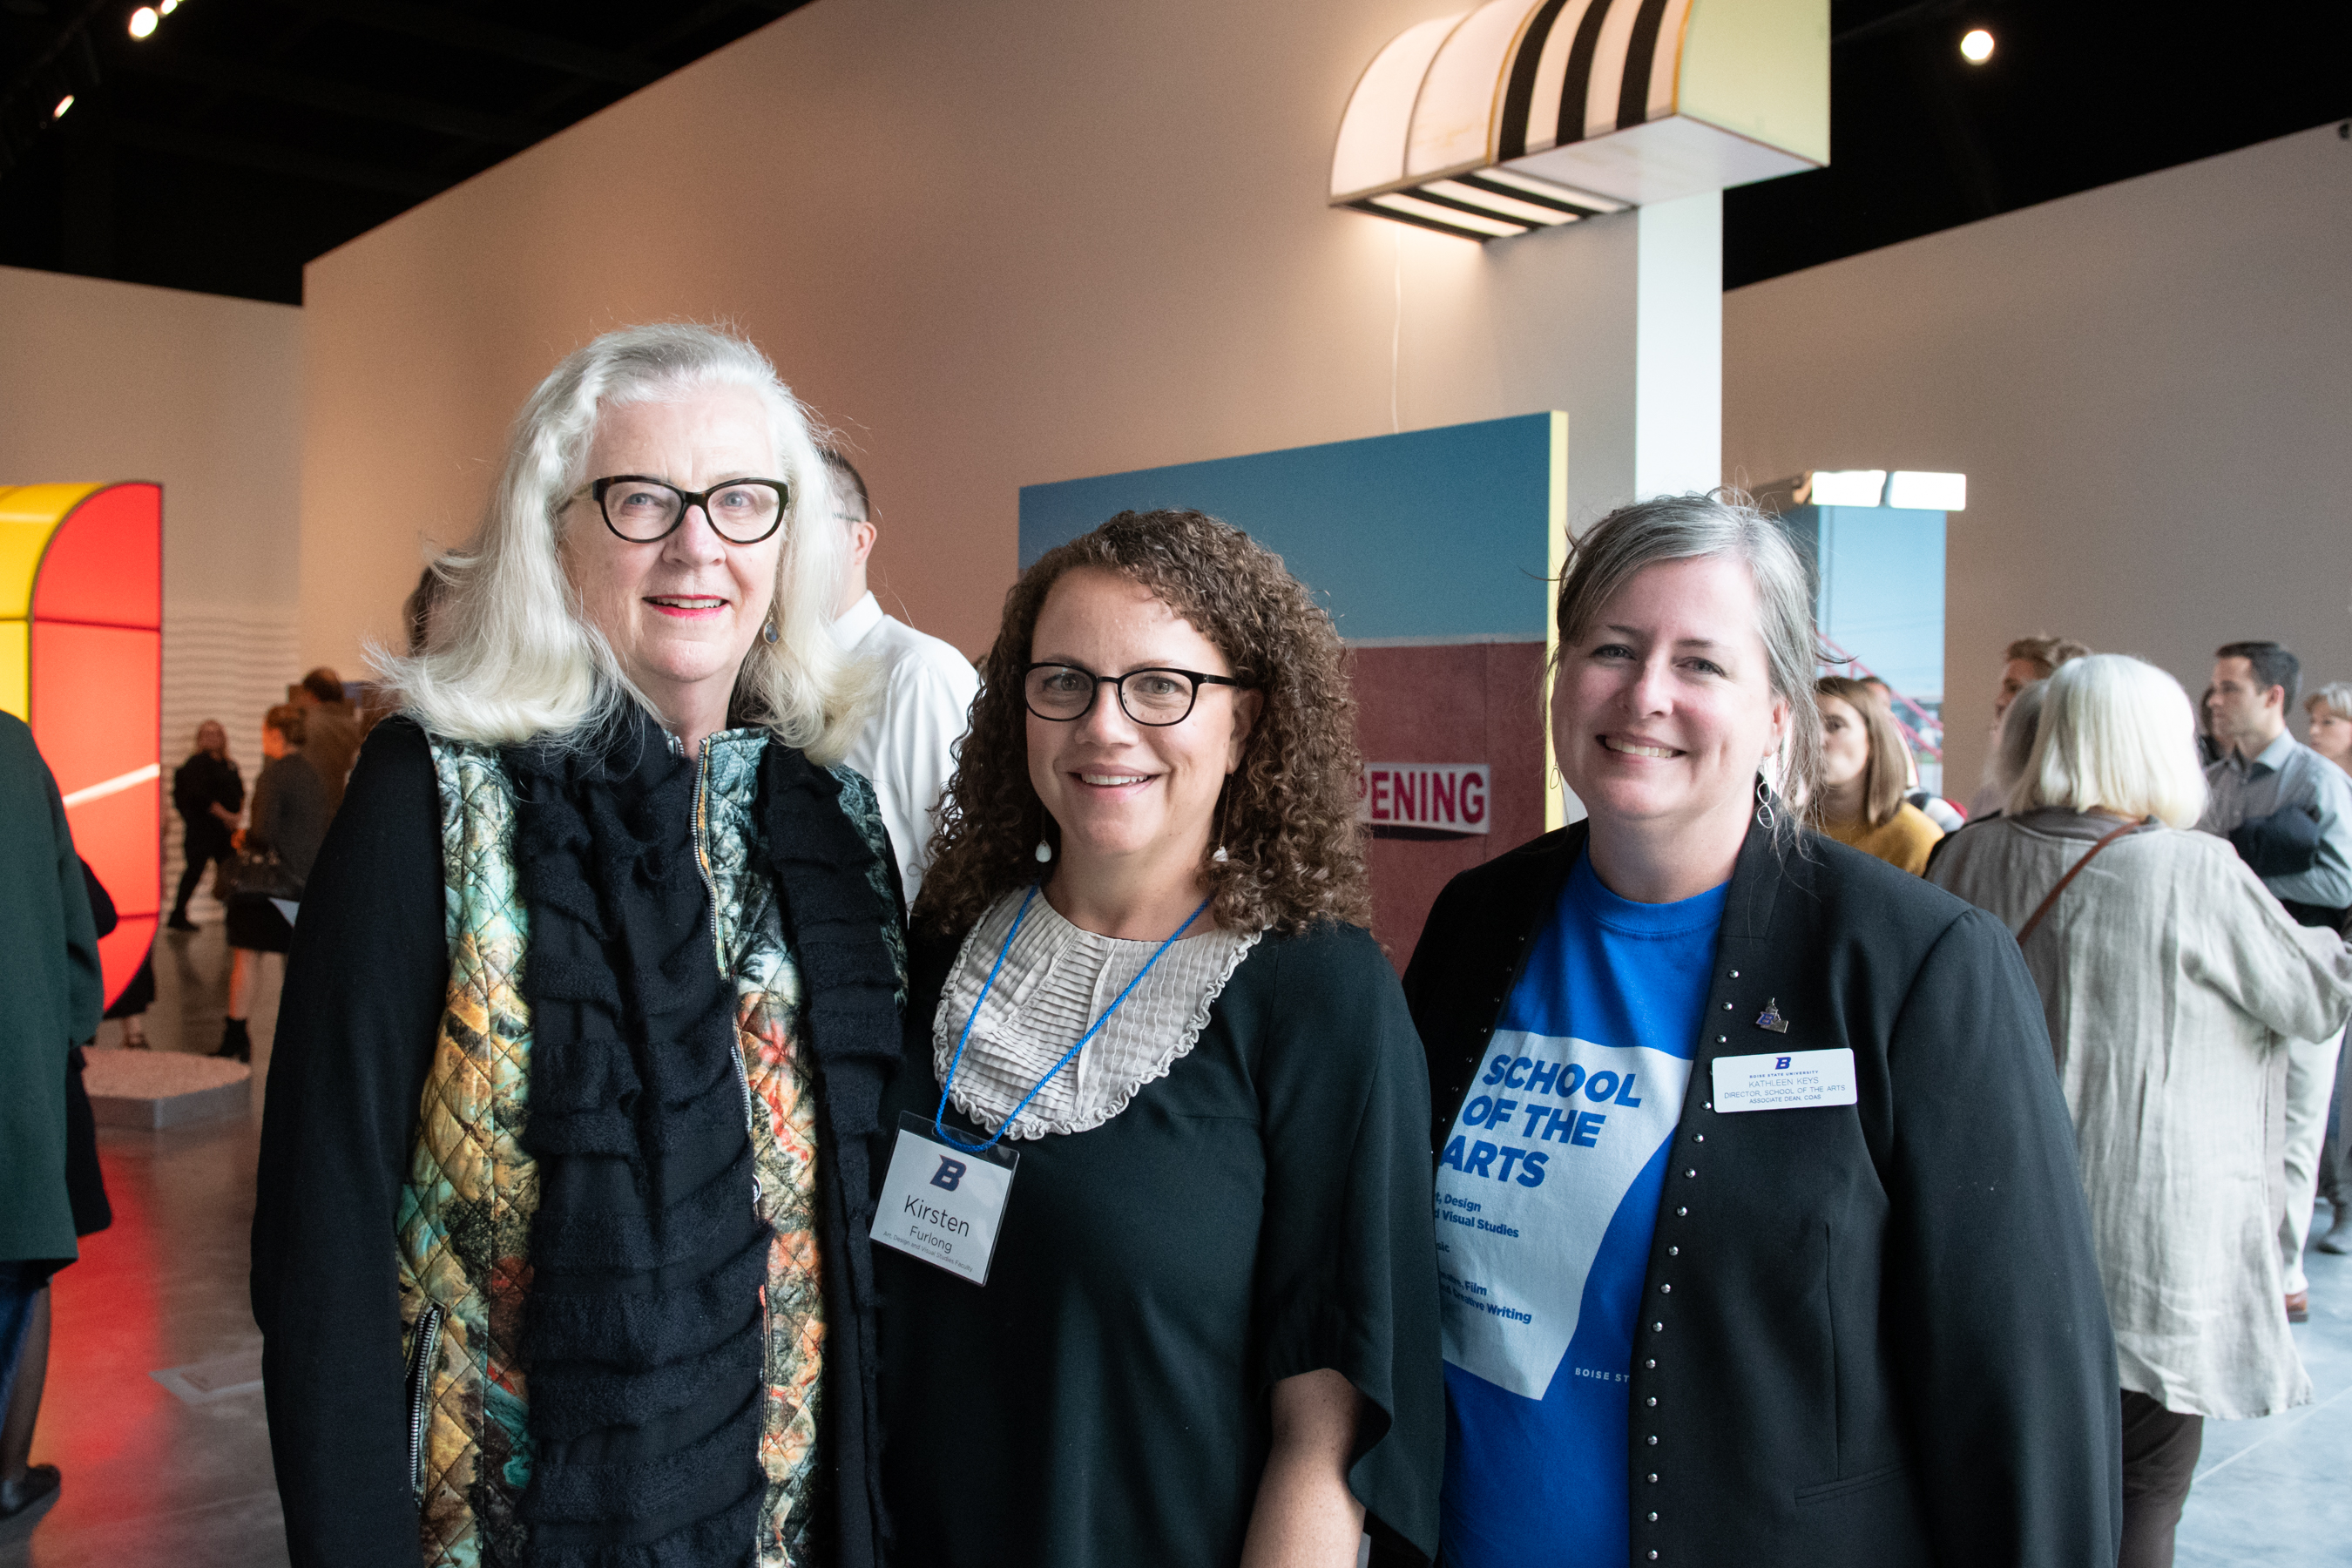 Kirsten Furlong and Kathleen Keys pose with another woman